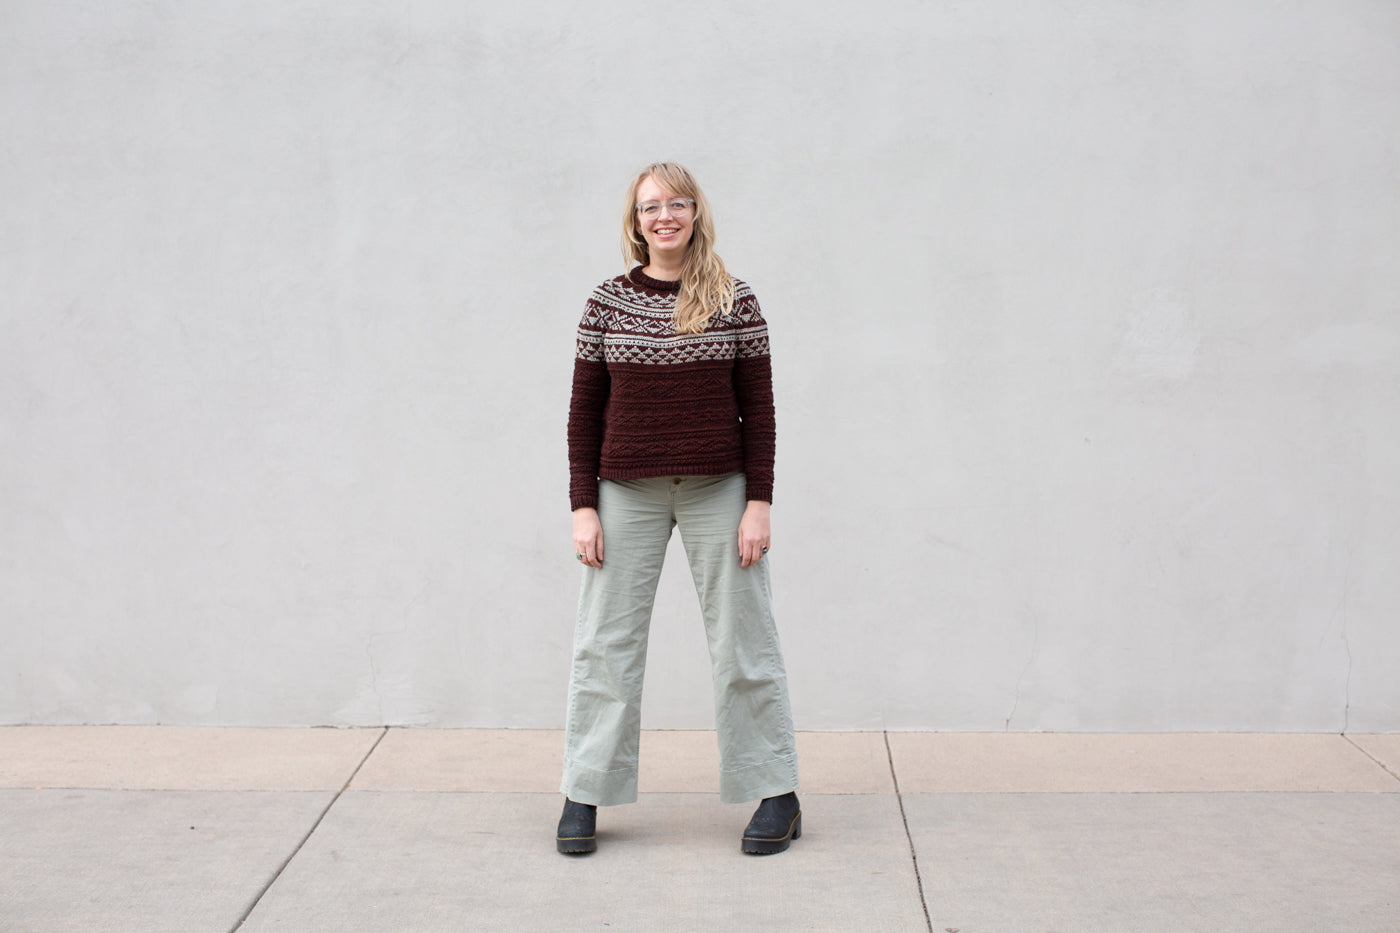 Amber standing in front of a white wall on a city street with her hands to her side, facing the camera and smiling.  Amber is wearing a burgundy/mint green knitted sweater with light green pants.